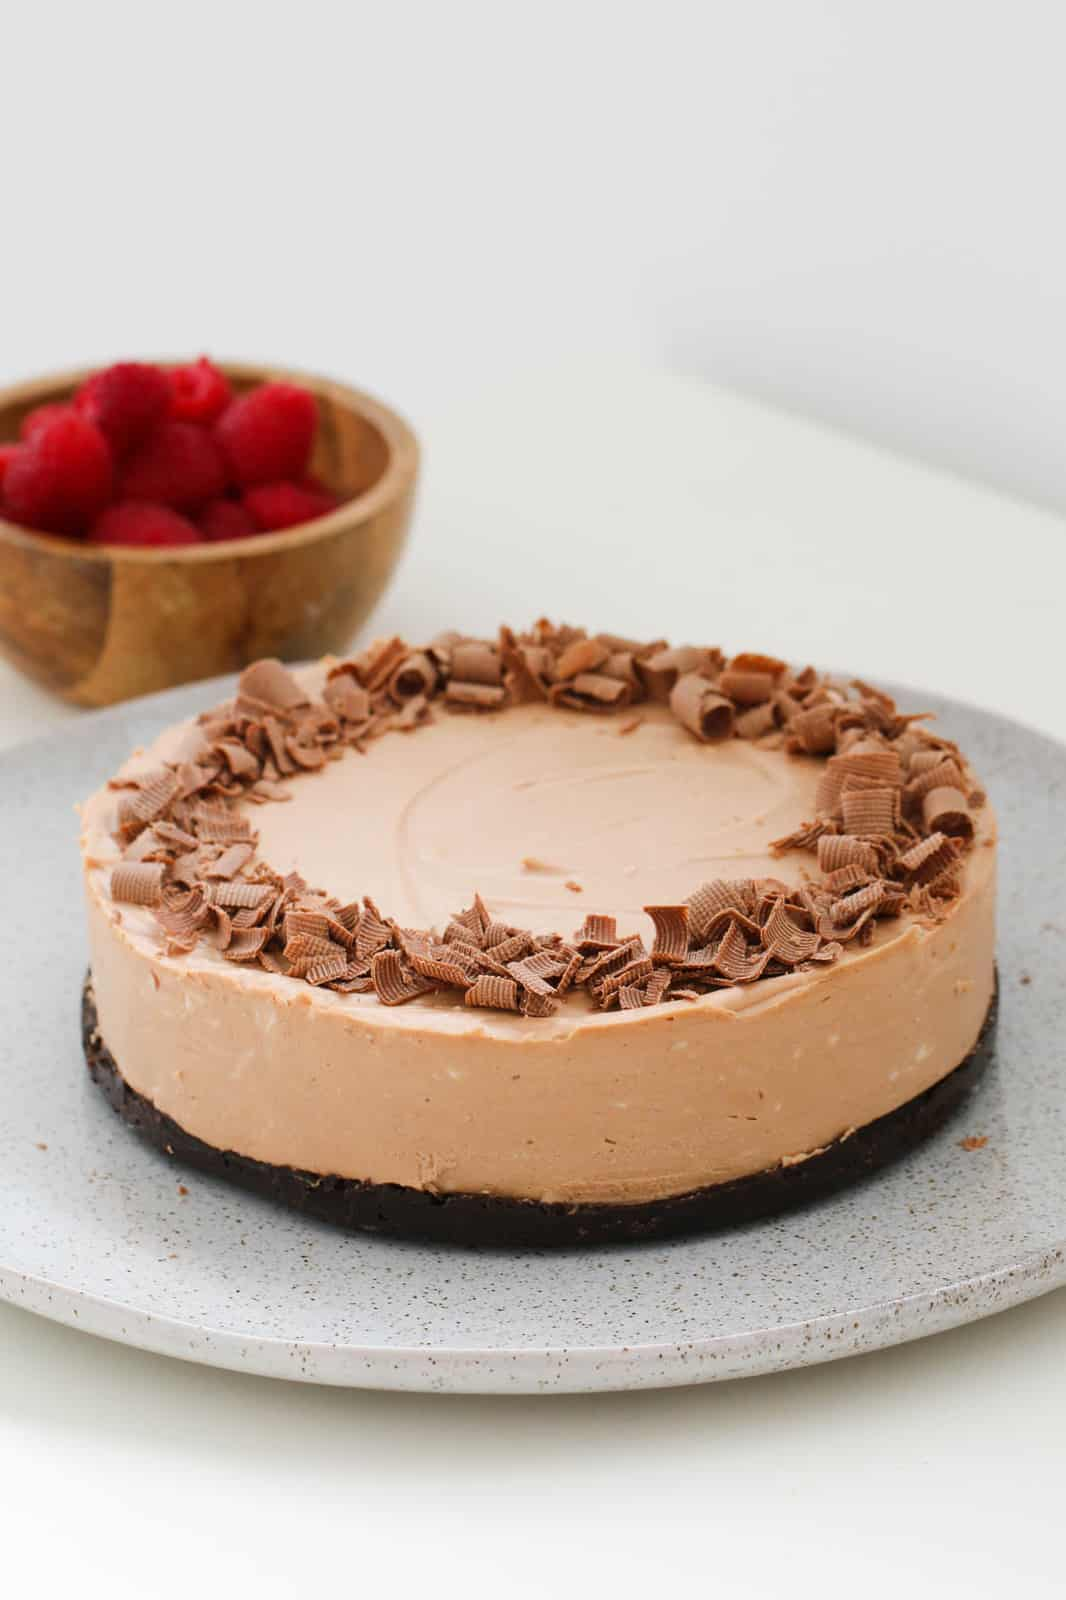 A round chocolate cheesecake with grated chocolate on top, and a bowl of raspberries in the background.